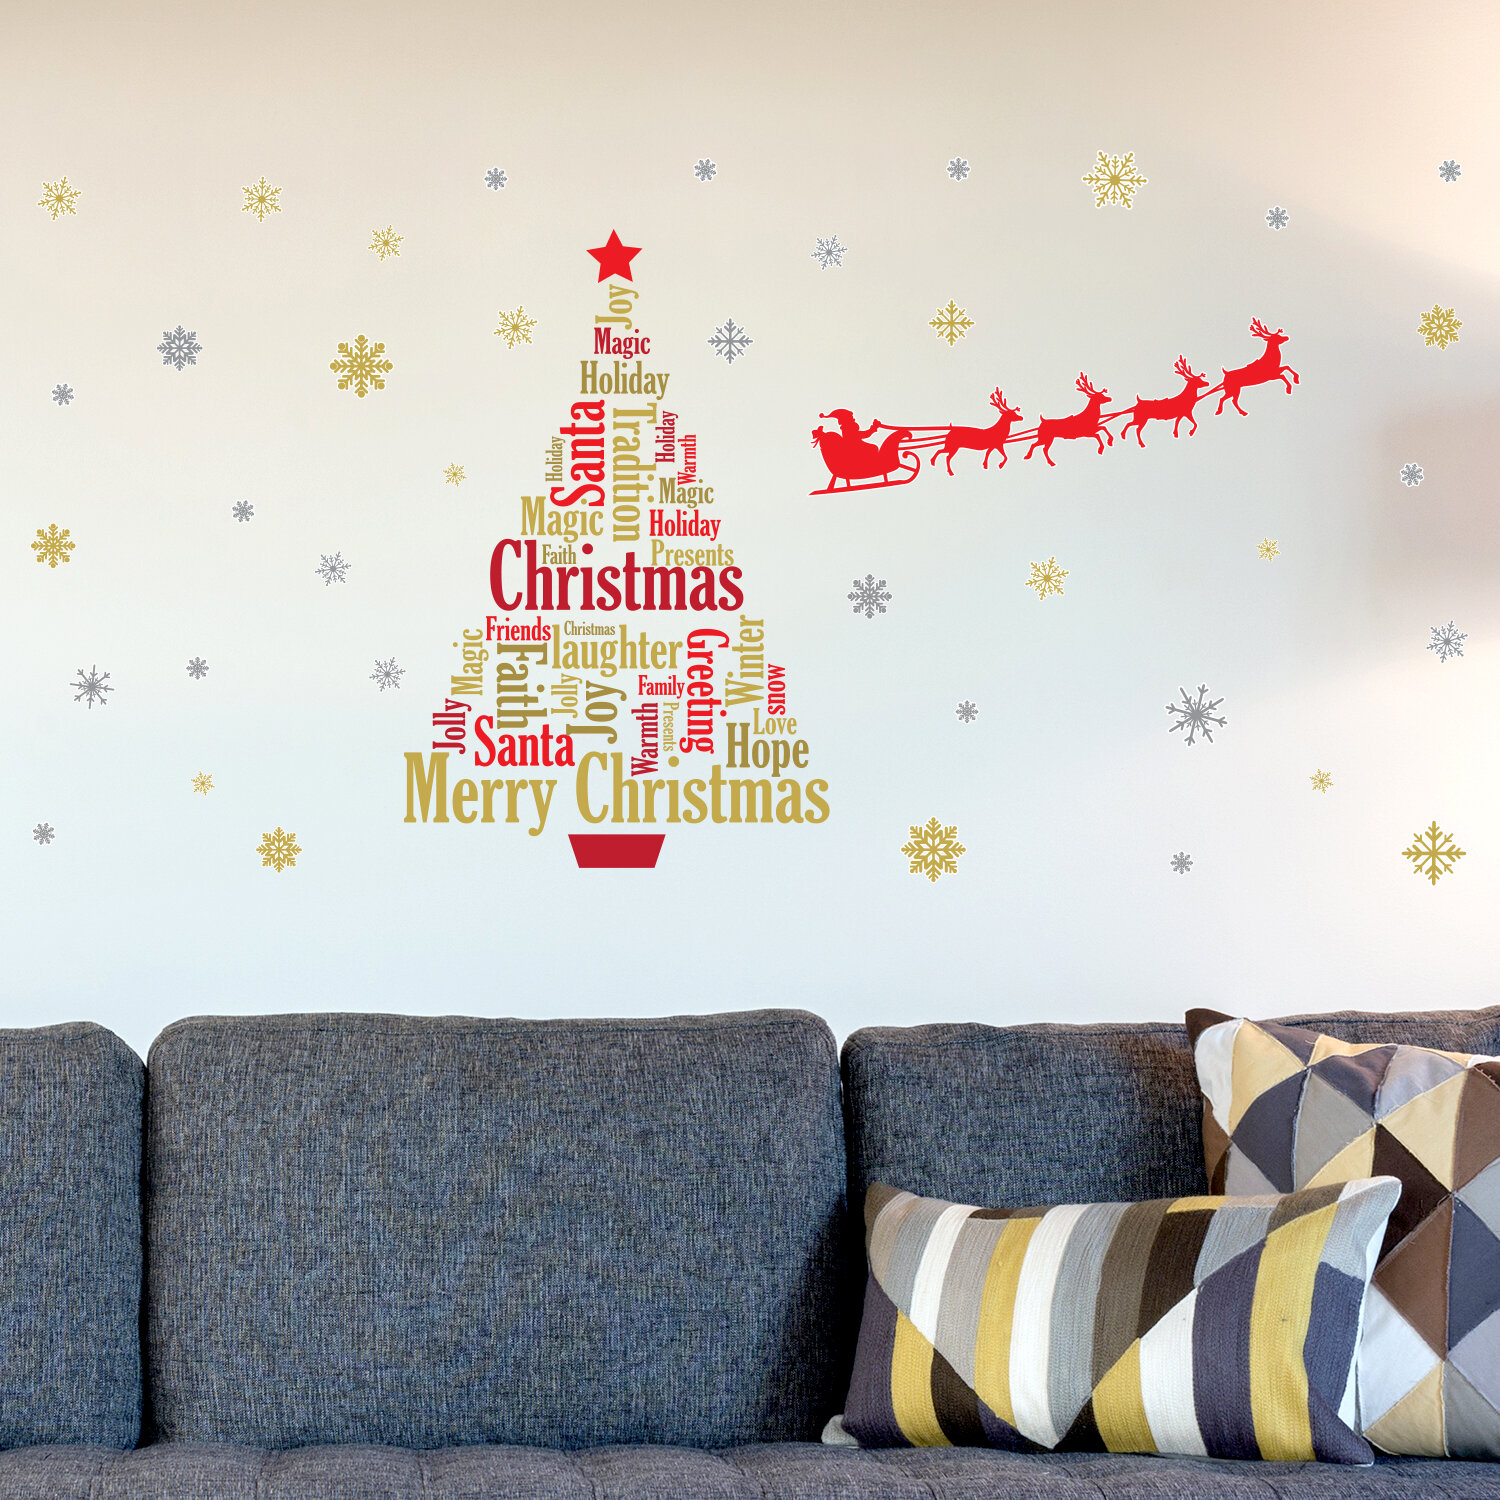 The Holiday Aisle English Quotes Santau0027s Sleigh Christmas Tree Wall Decal U0026  Reviews | Wayfair